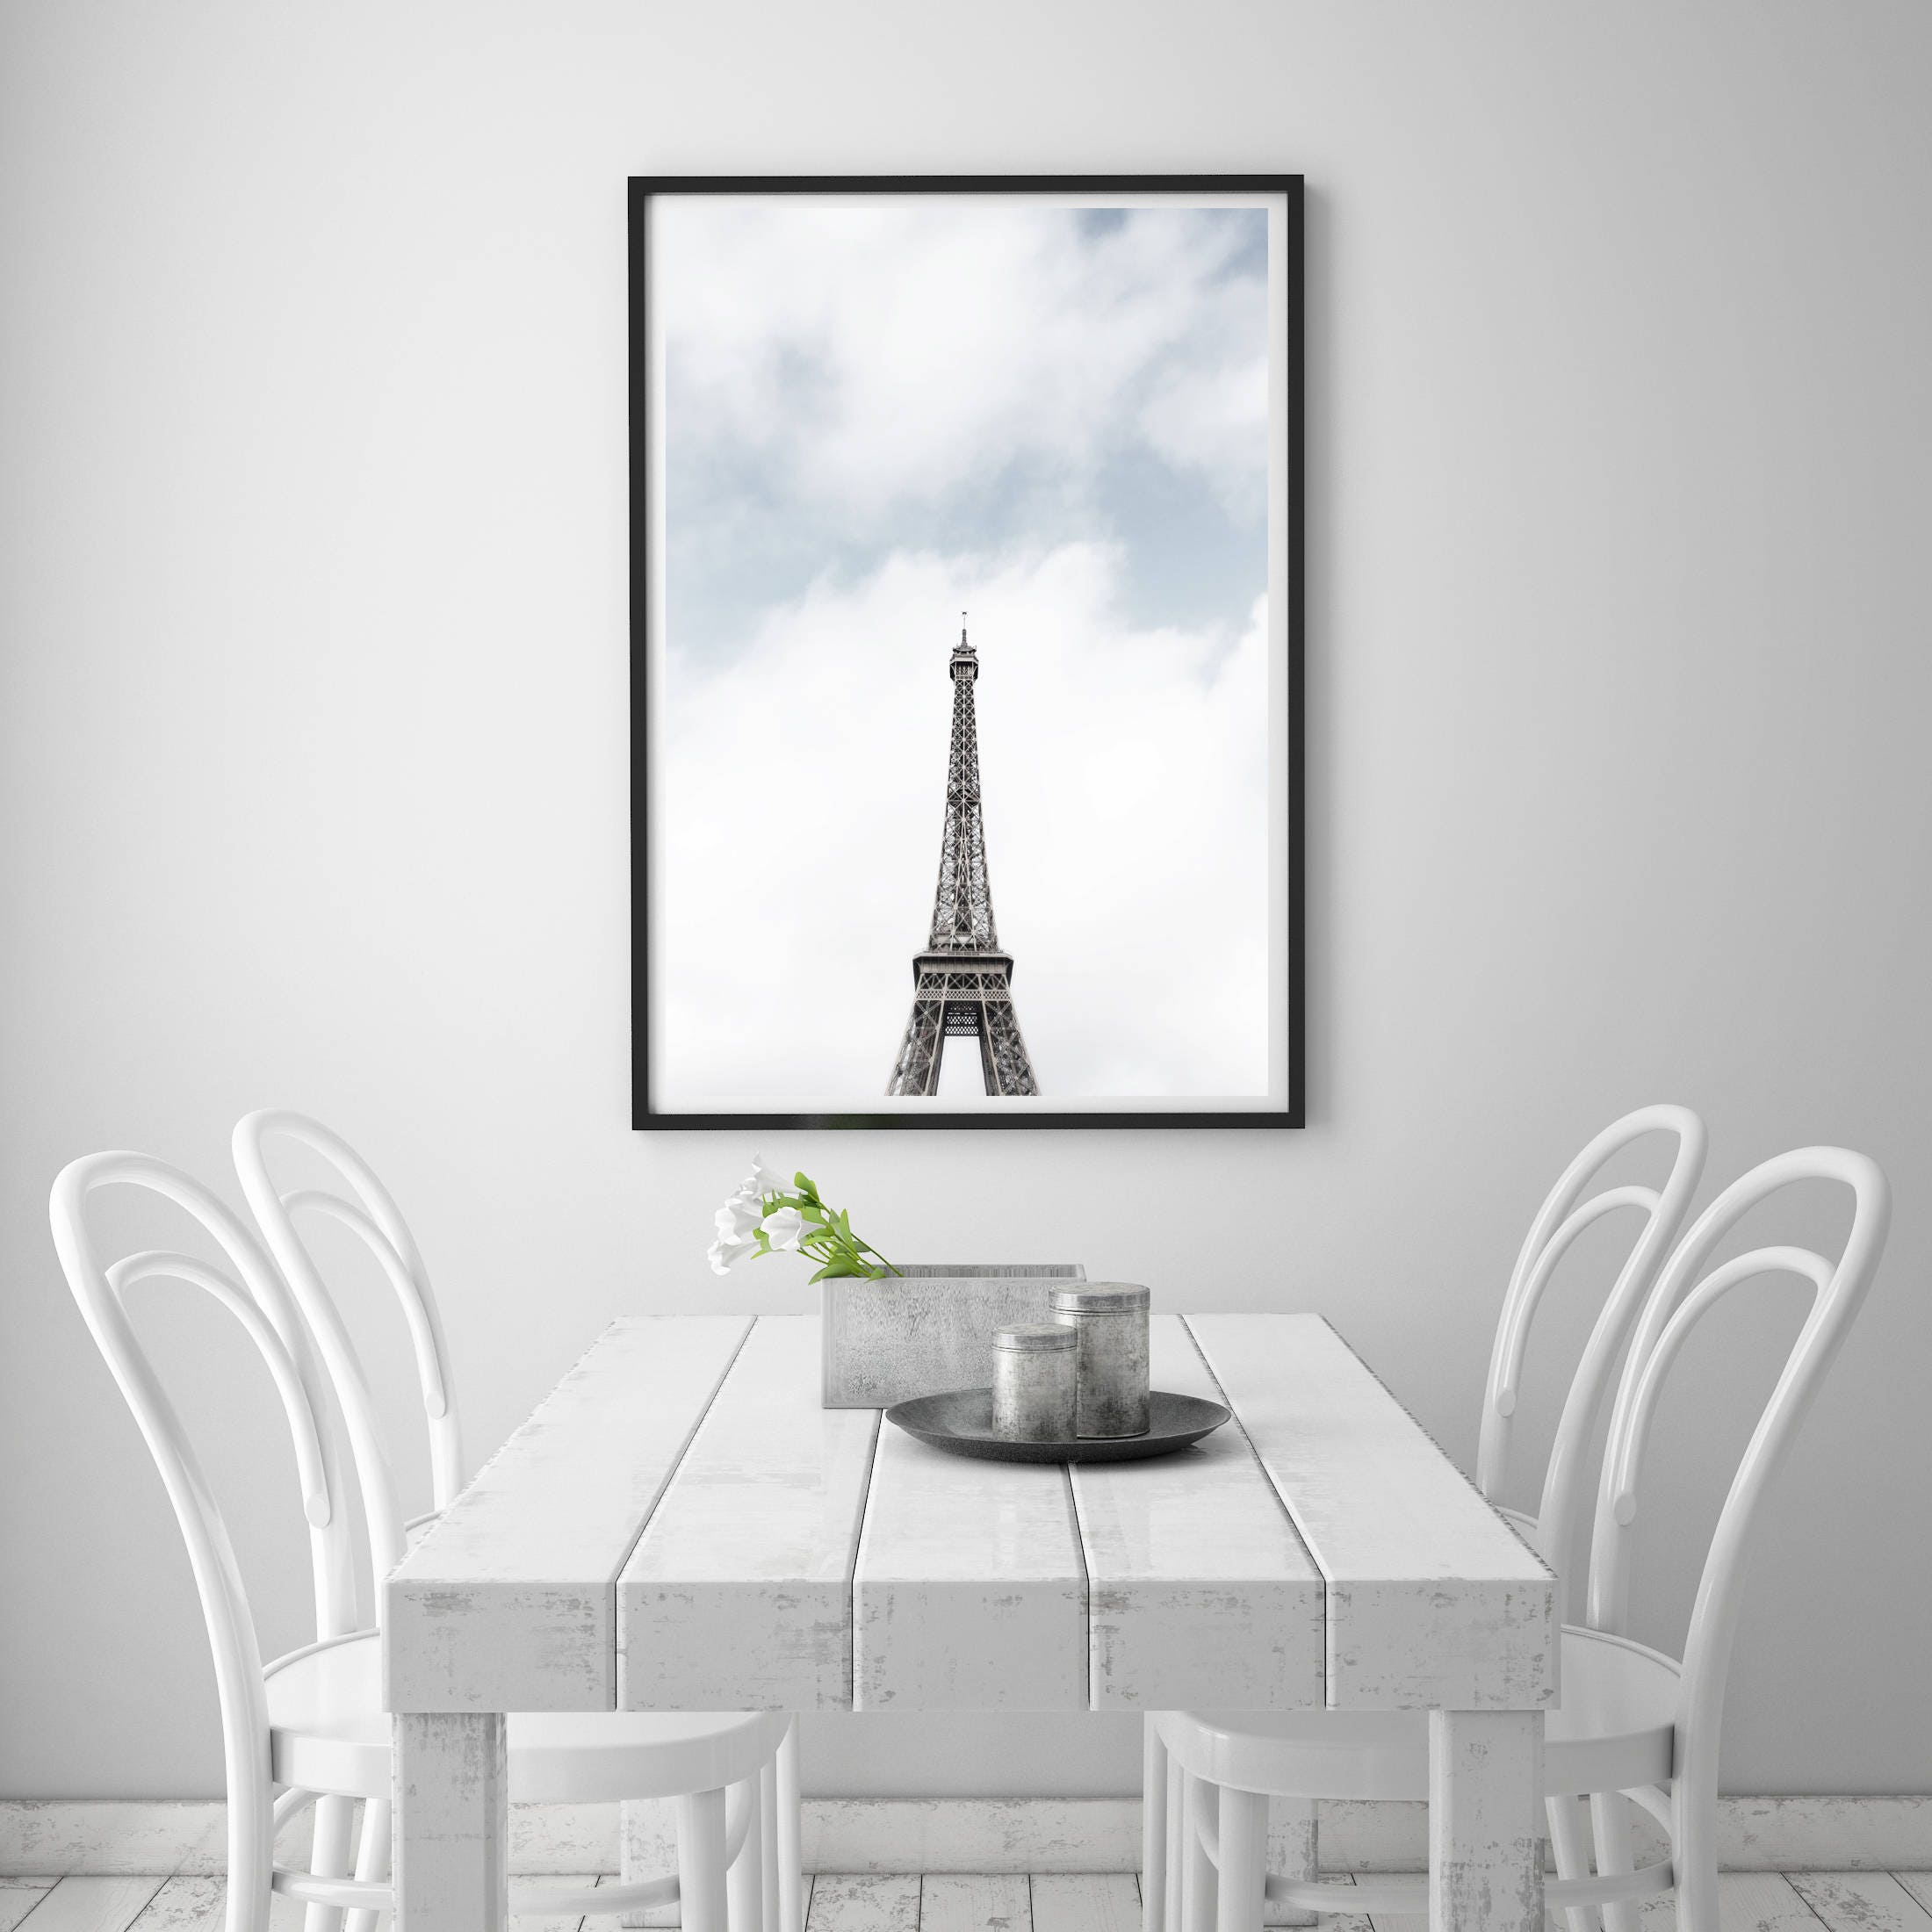 Awesome eiffel tower bedroom accessories contemporary trends home 2017 - Eiffel tower decor for bedroom ...